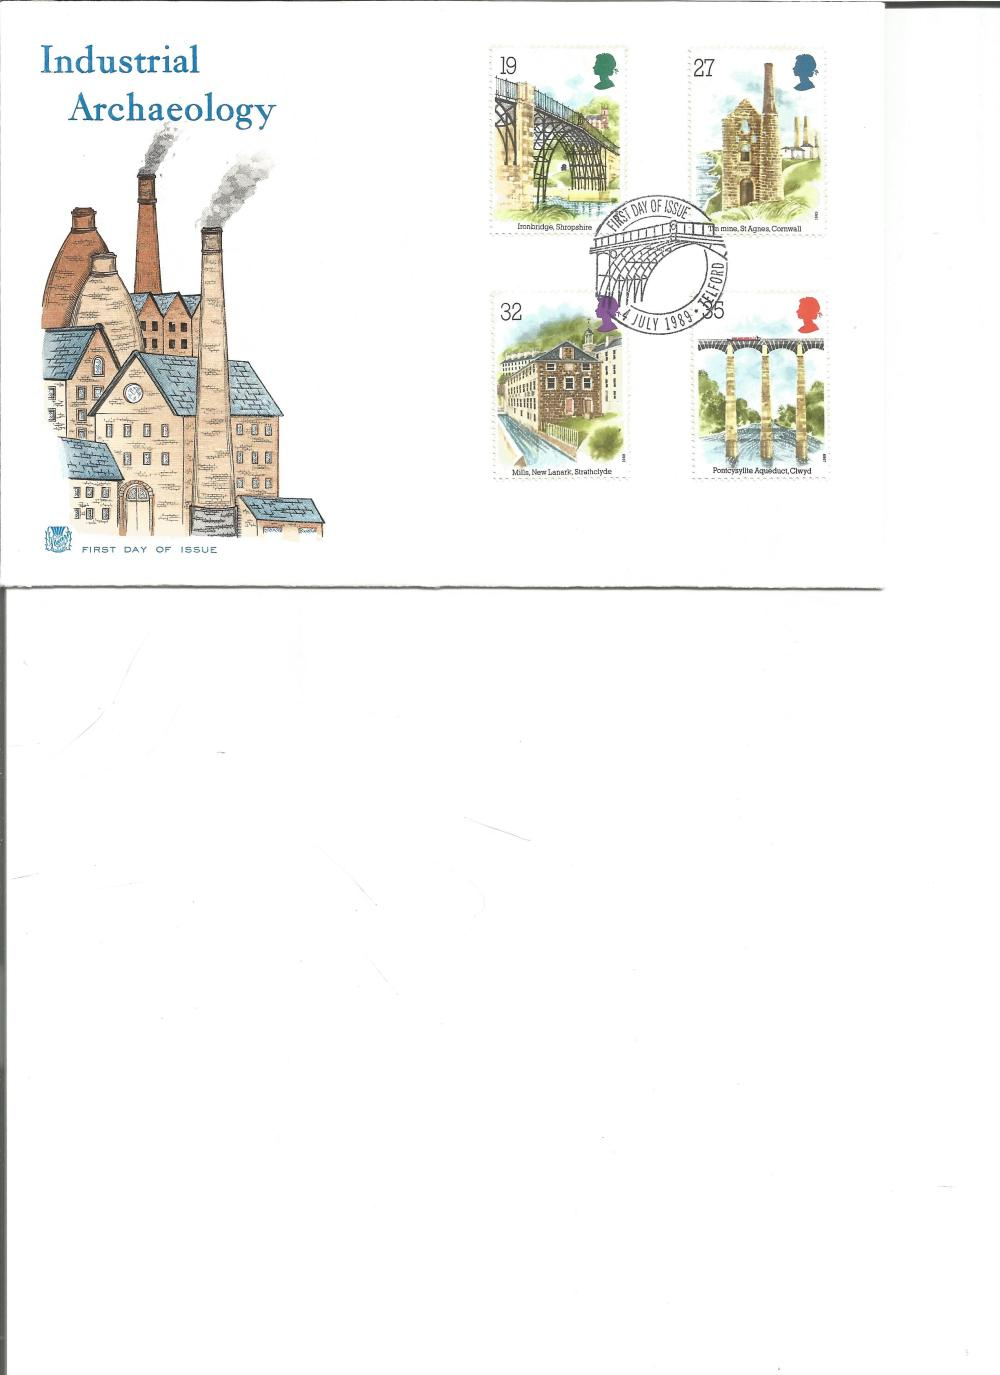 FDC Industrial Archaeology c/w set of four commemorative stamps PM First day of Issue Telford 4th